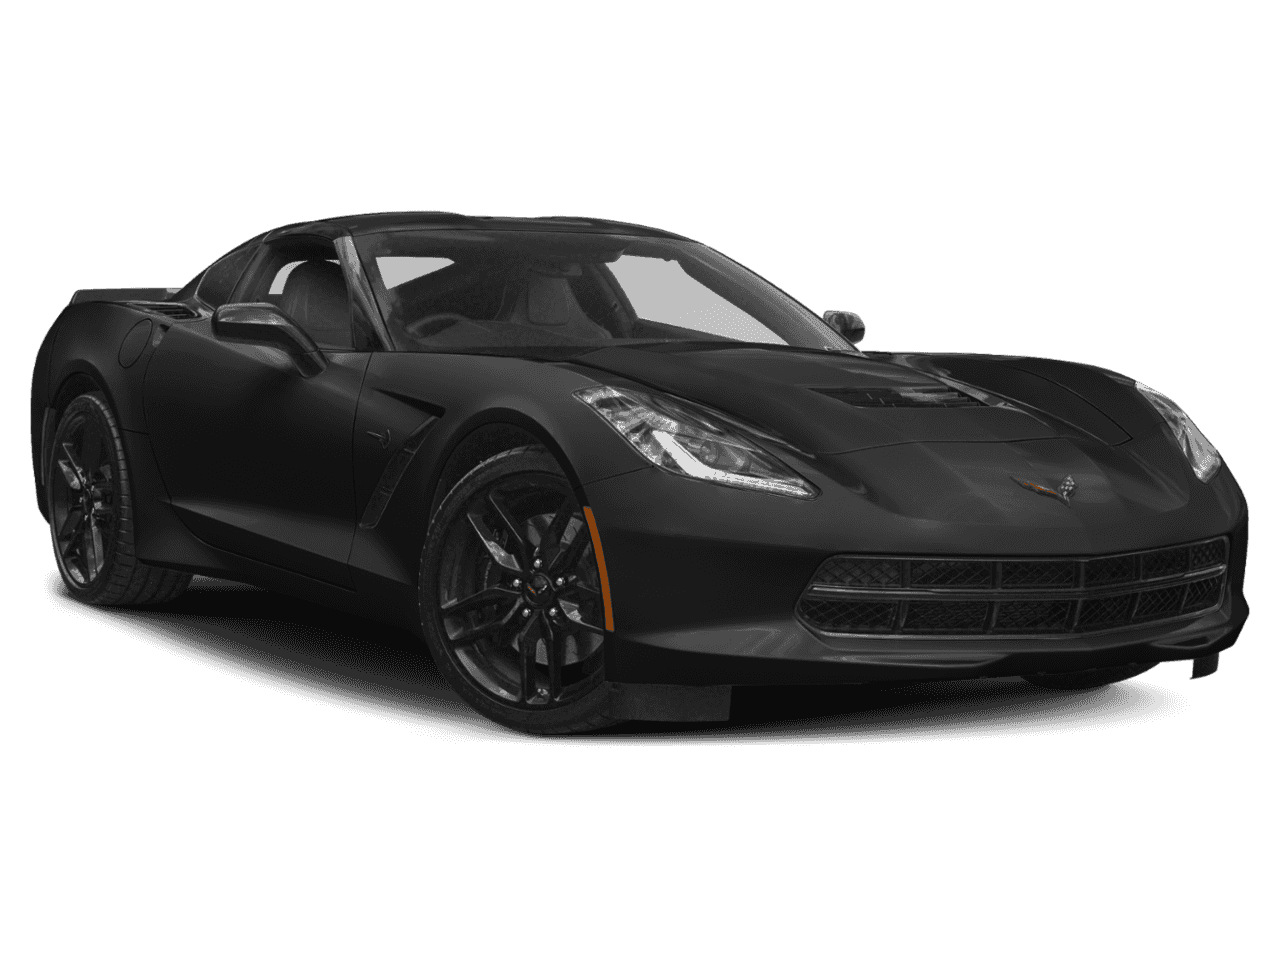 2019 Chevrolet Corvette Z51 2LT RWD 2dr Car